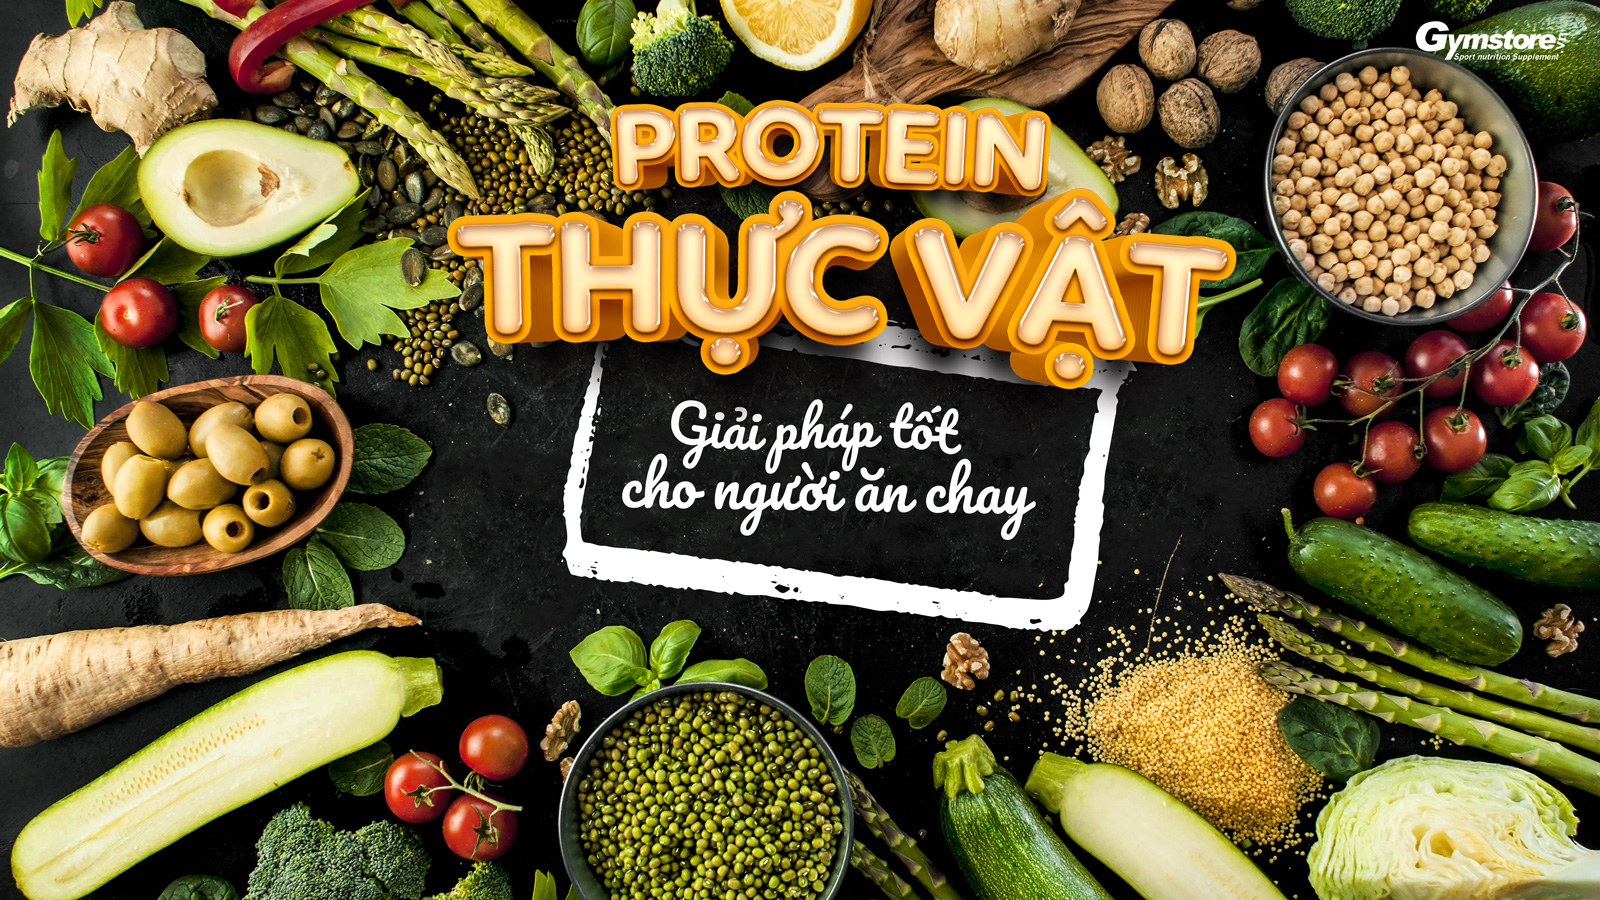 Protein-thuc-vat-thich-hop-cho-nguoi-an-chay-gymstore